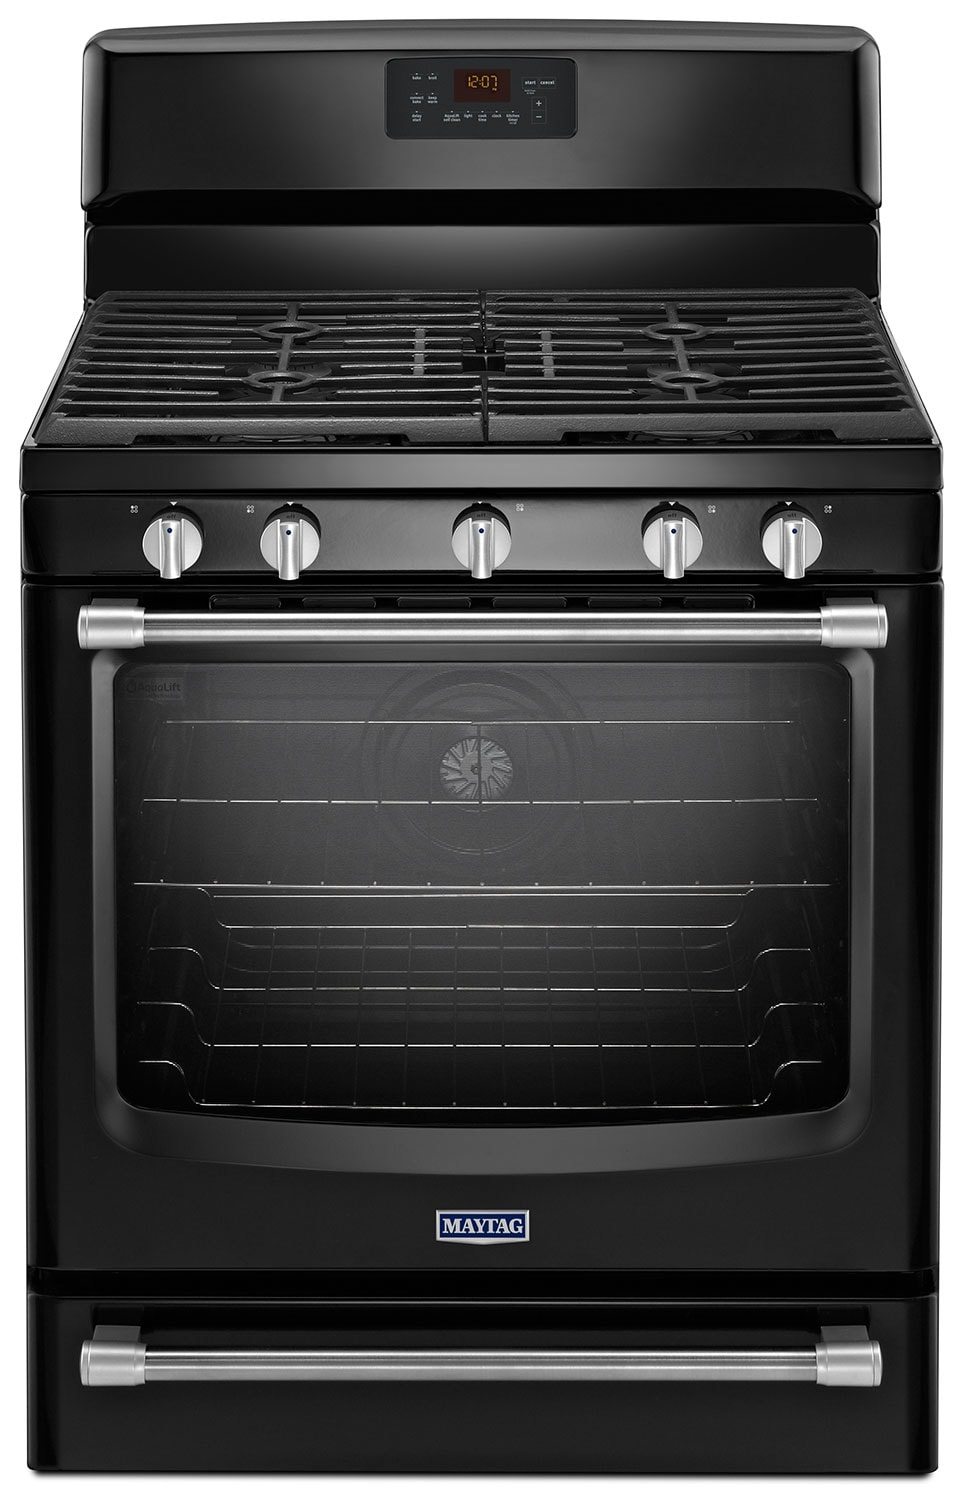 Maytag Black Freestanding Gas Convection Range (5.8 Cu. Ft.) - MGR8700DE